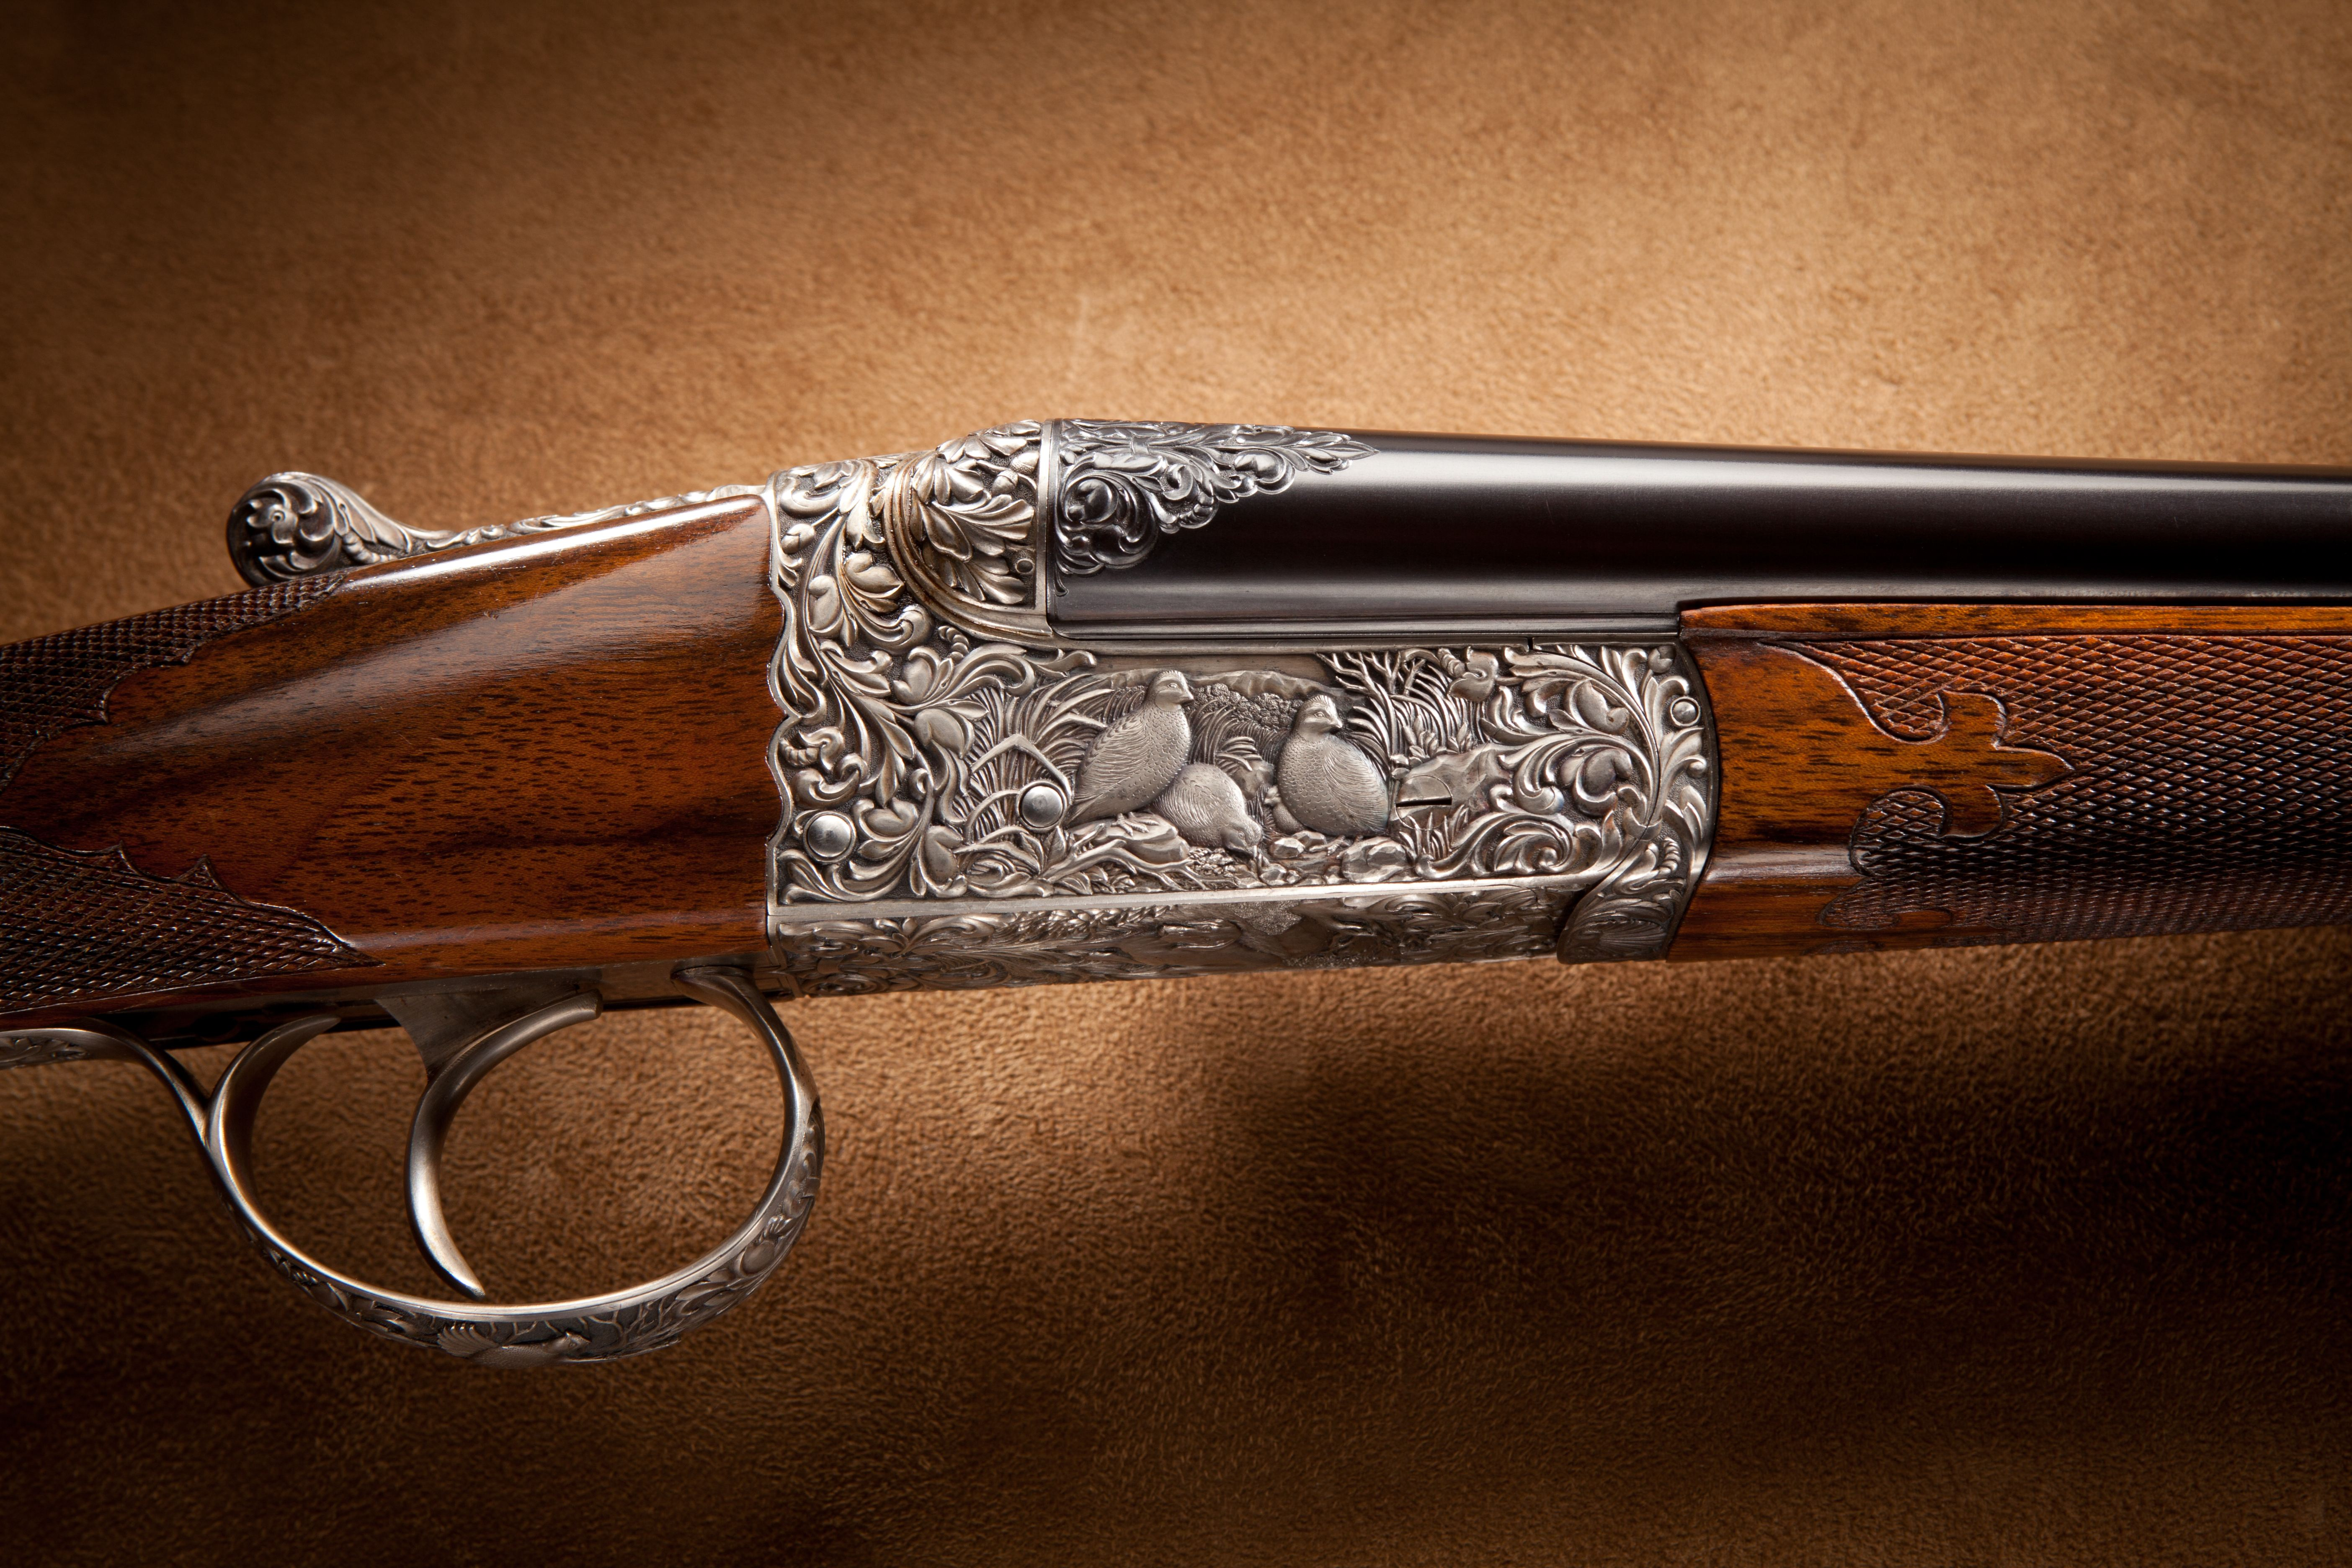 Westley Richards Special Side by Side Shotgun - .410 ga.